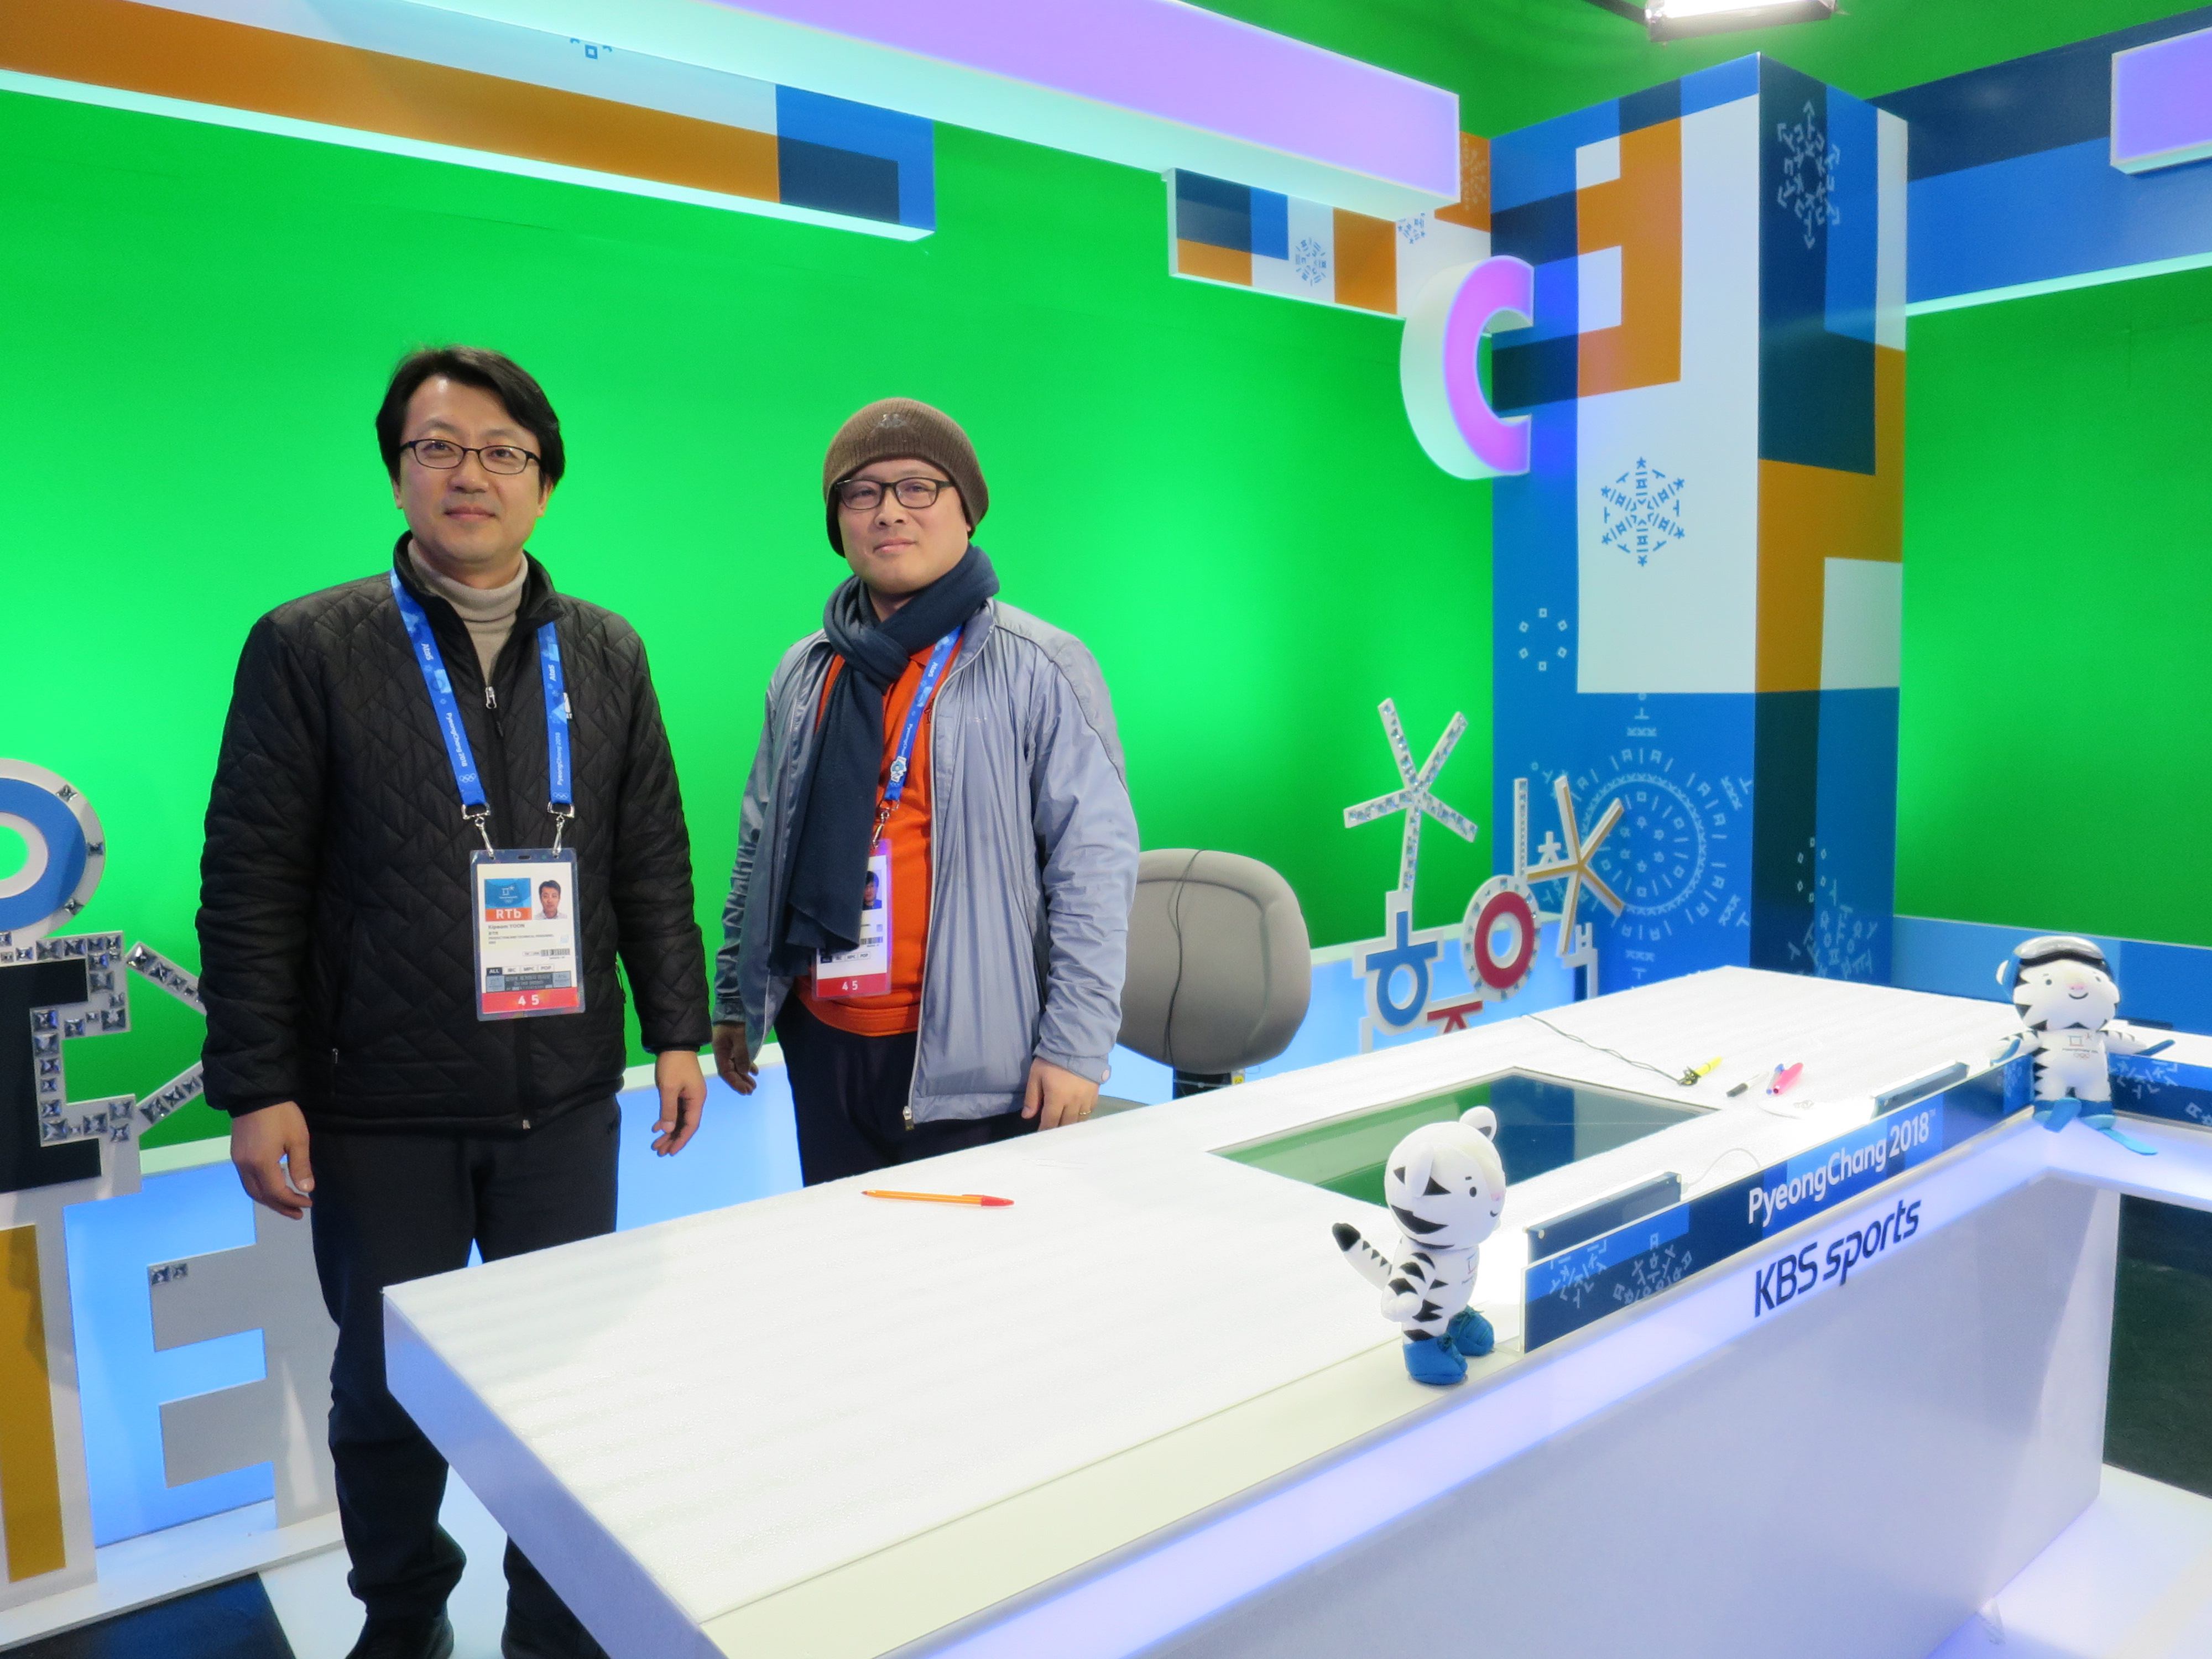 Live From PyeongChang: Korean Broadcasting System Delivers